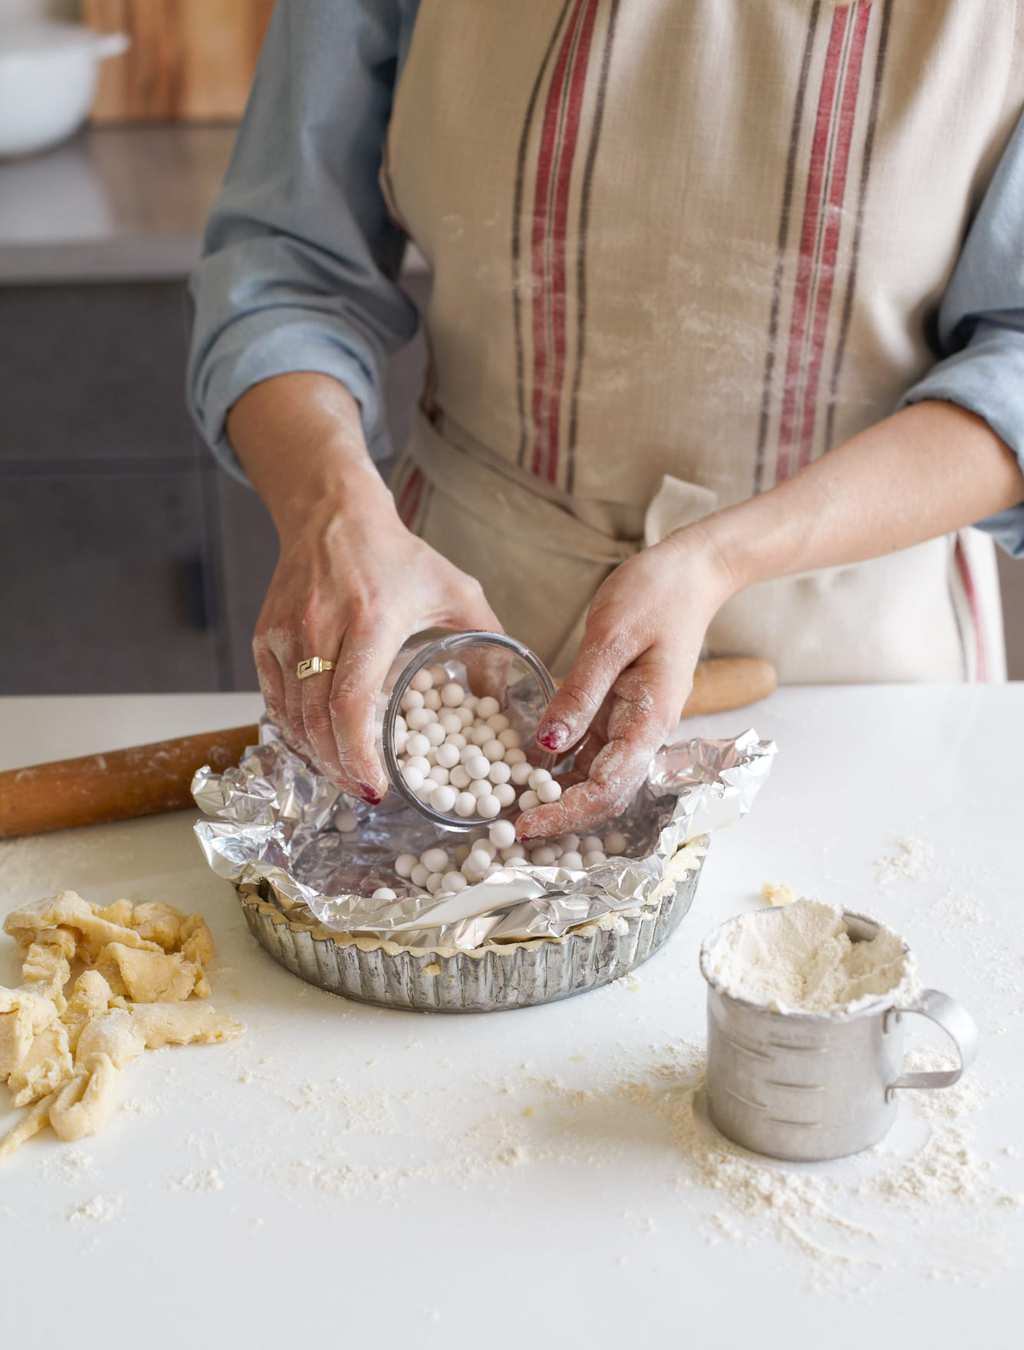 Making Basic Tart Crust